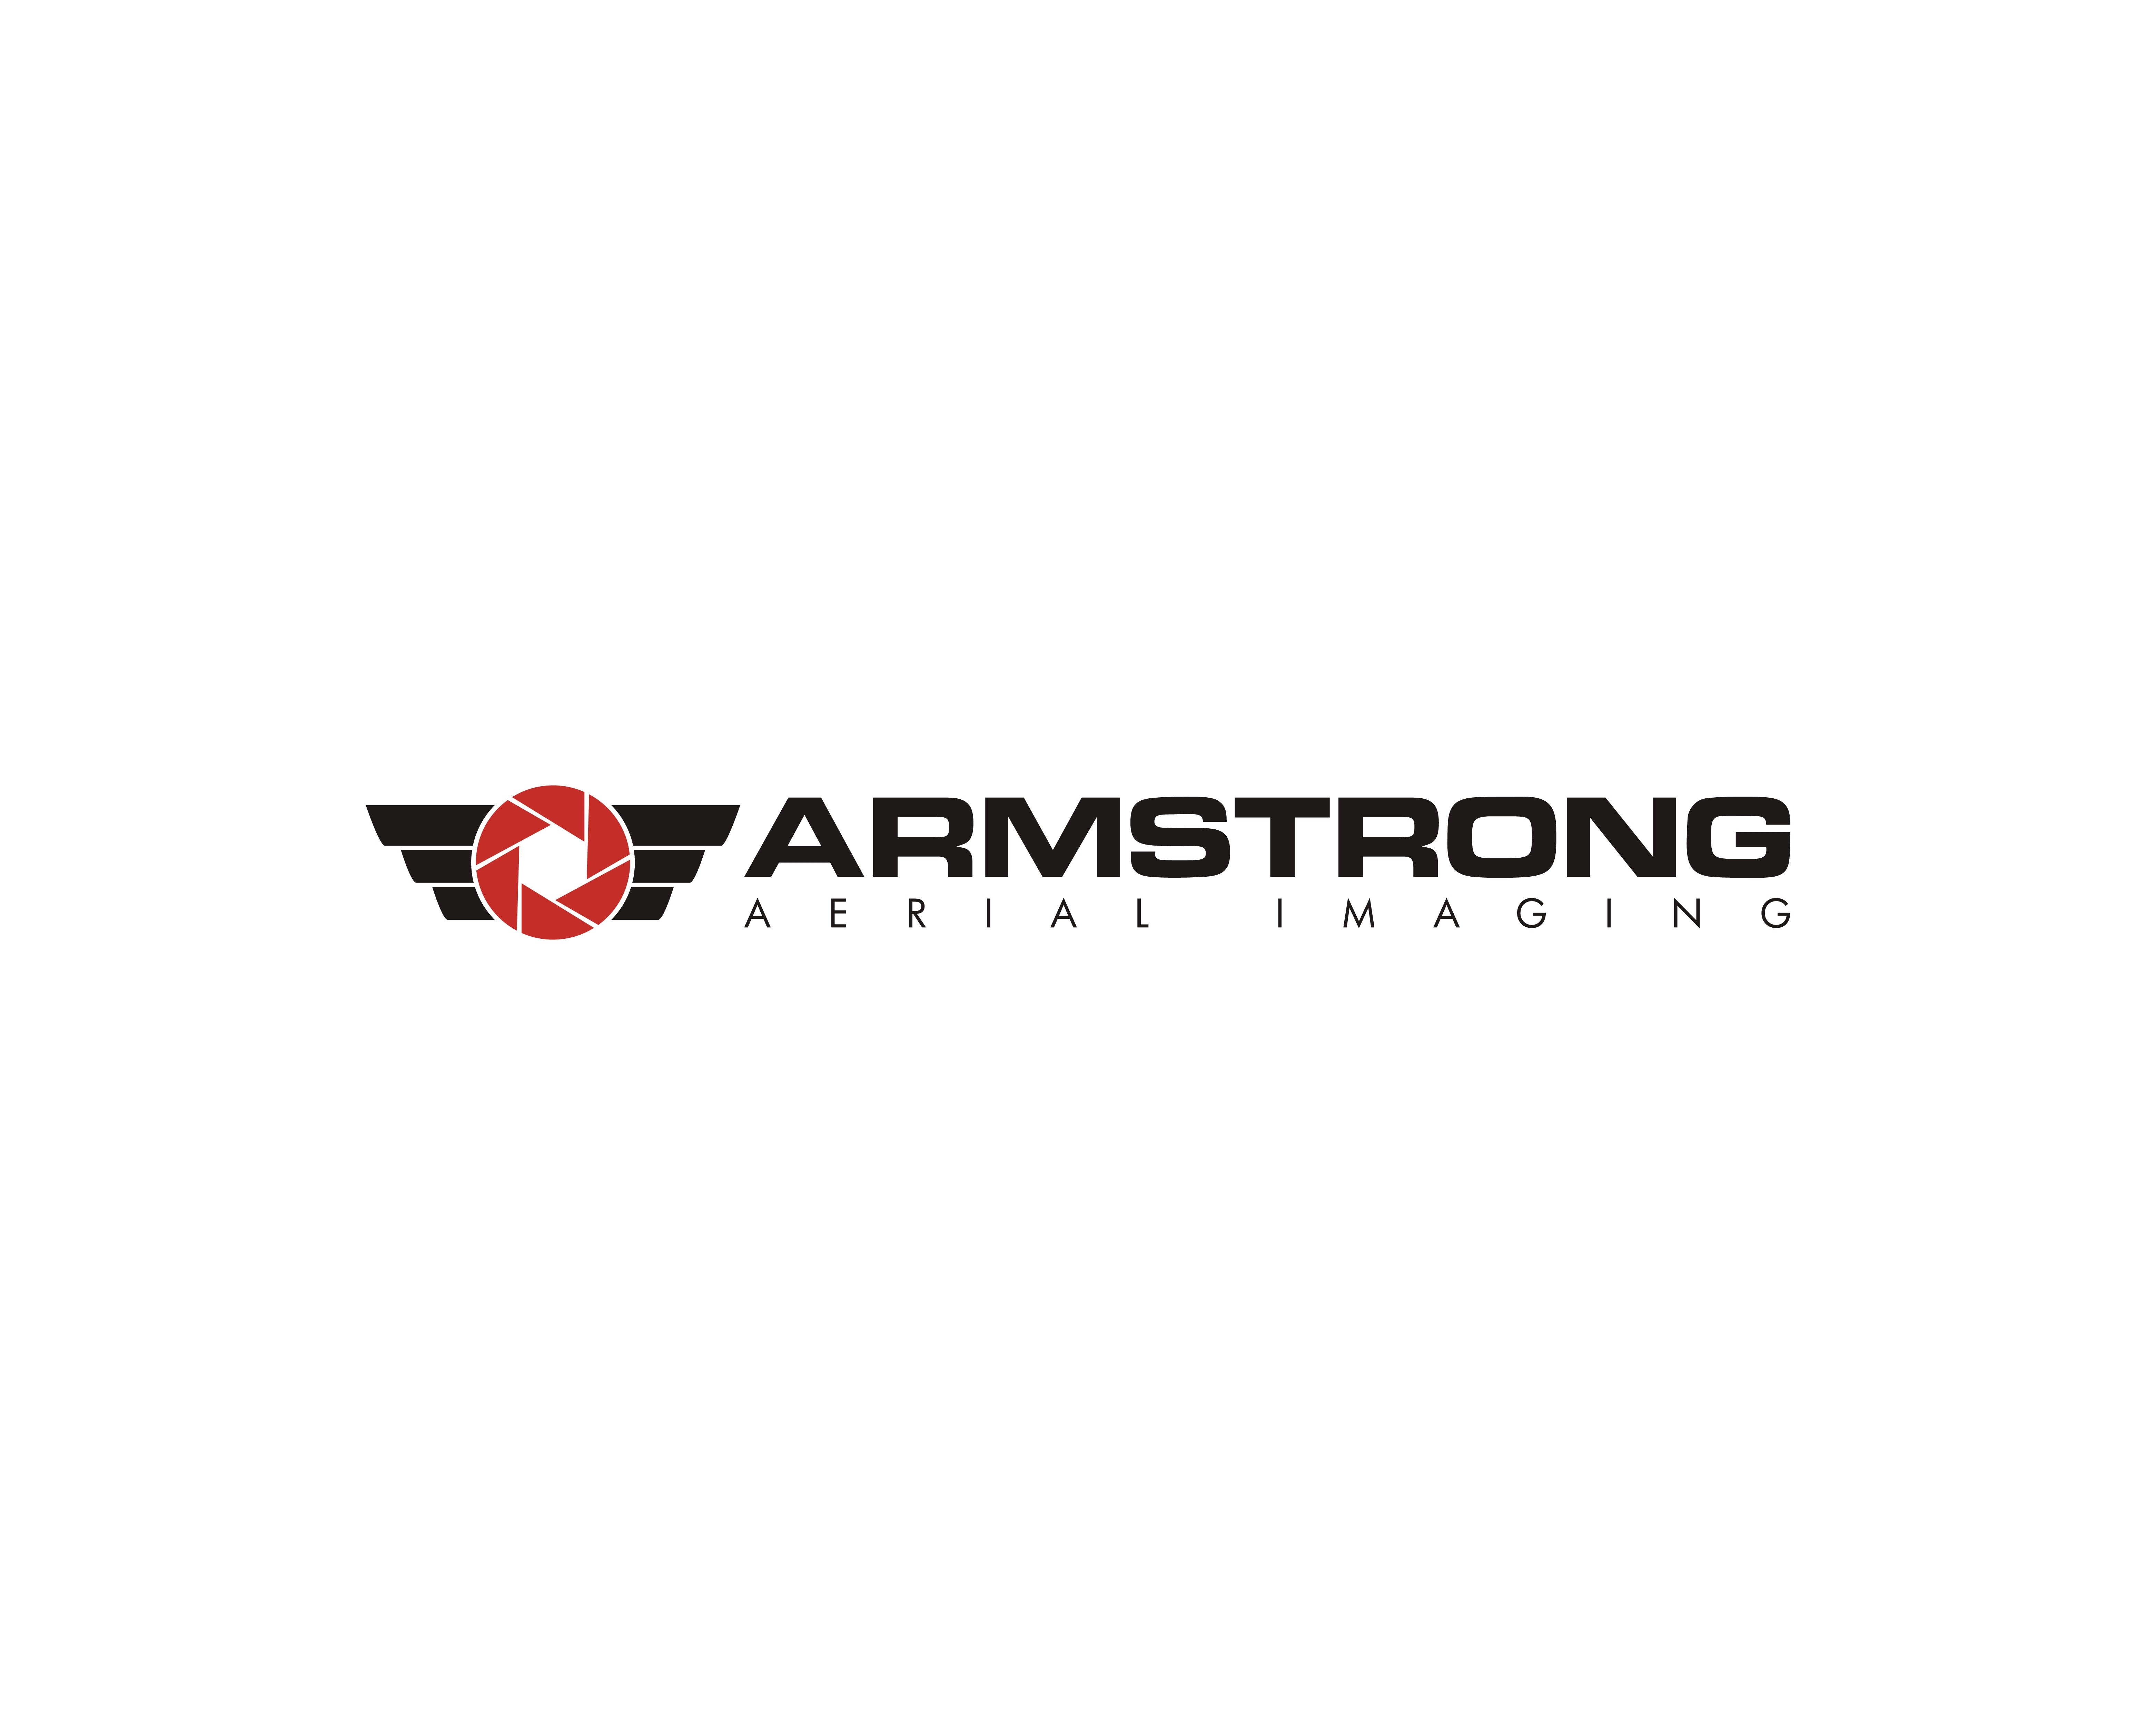 Armstrong Aerial Imaging